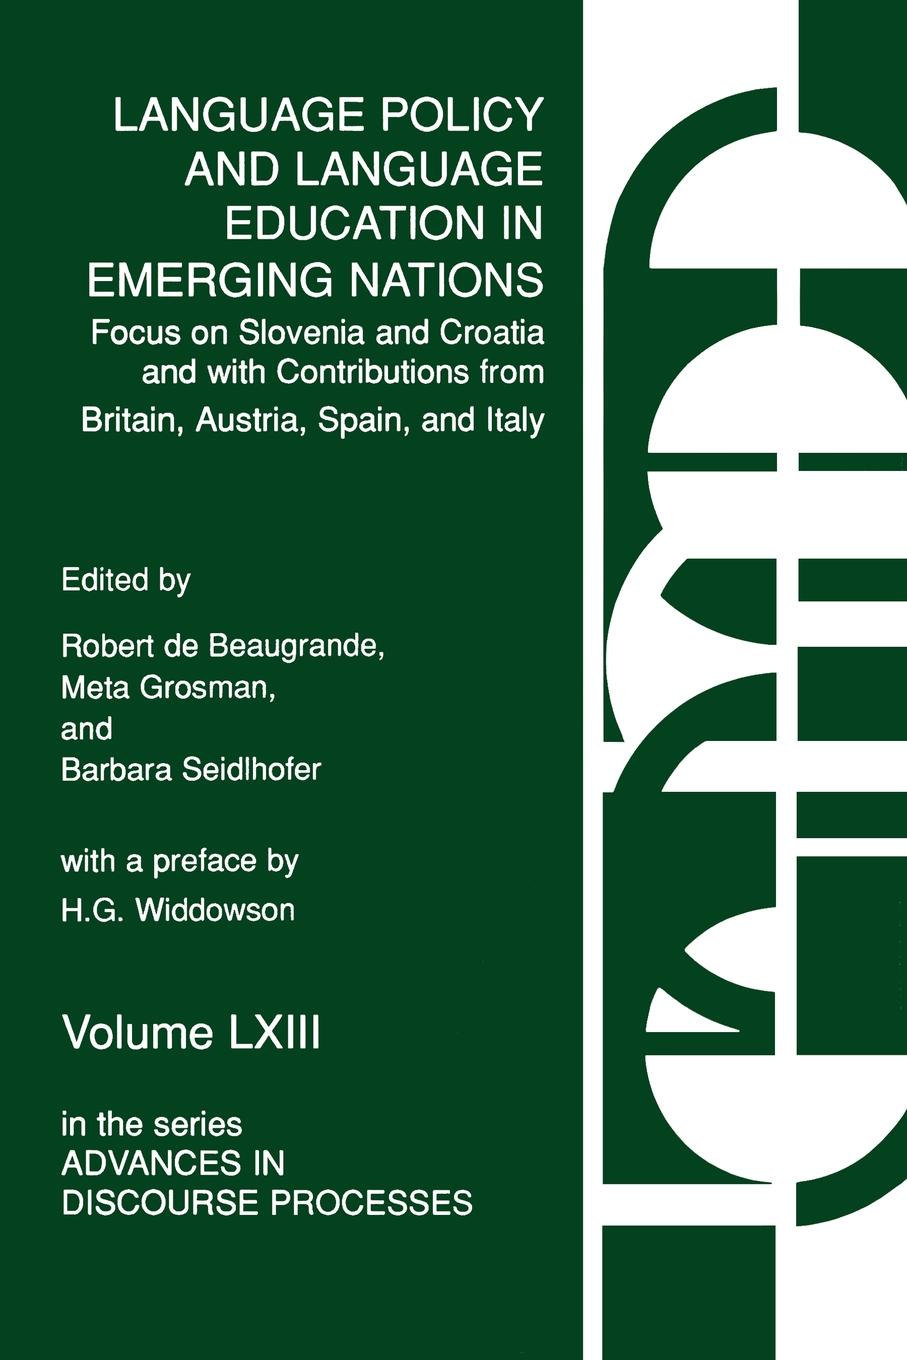 Meta Grosman, Barbara Seidlhofer, Robert De Beaugrande Language Policy and Language Education in Emerging Nations. Focus on Slovenia and Croatia with Contributions from Britain, Austria, Spain, and Italy sonja kirschner assessment of the language education policy in austria and its fitness for purpose within the european union